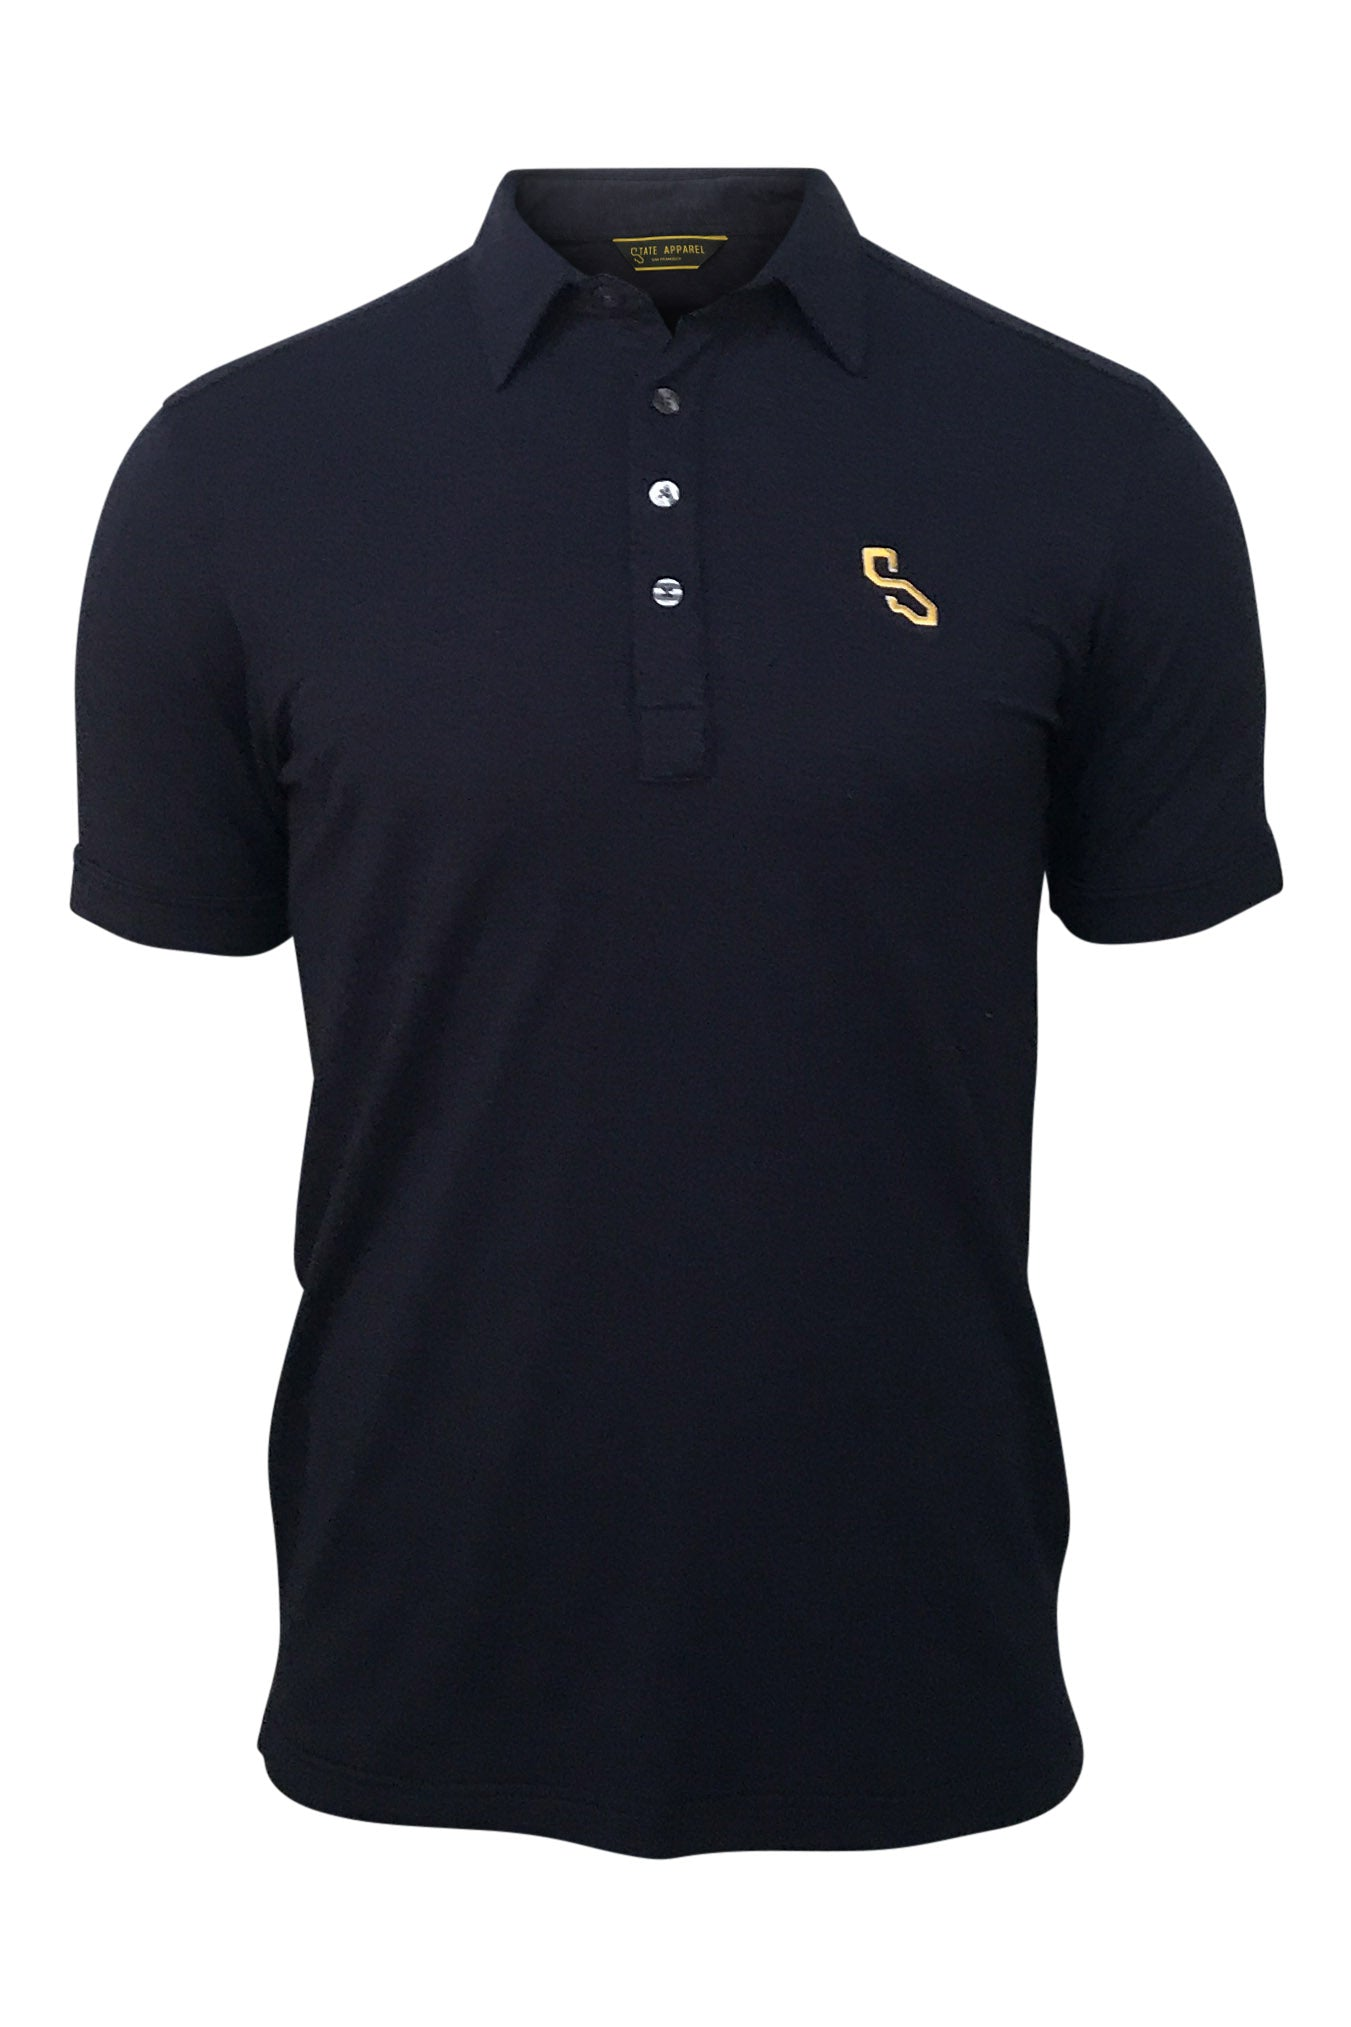 CLUB SHIRT - NAVY